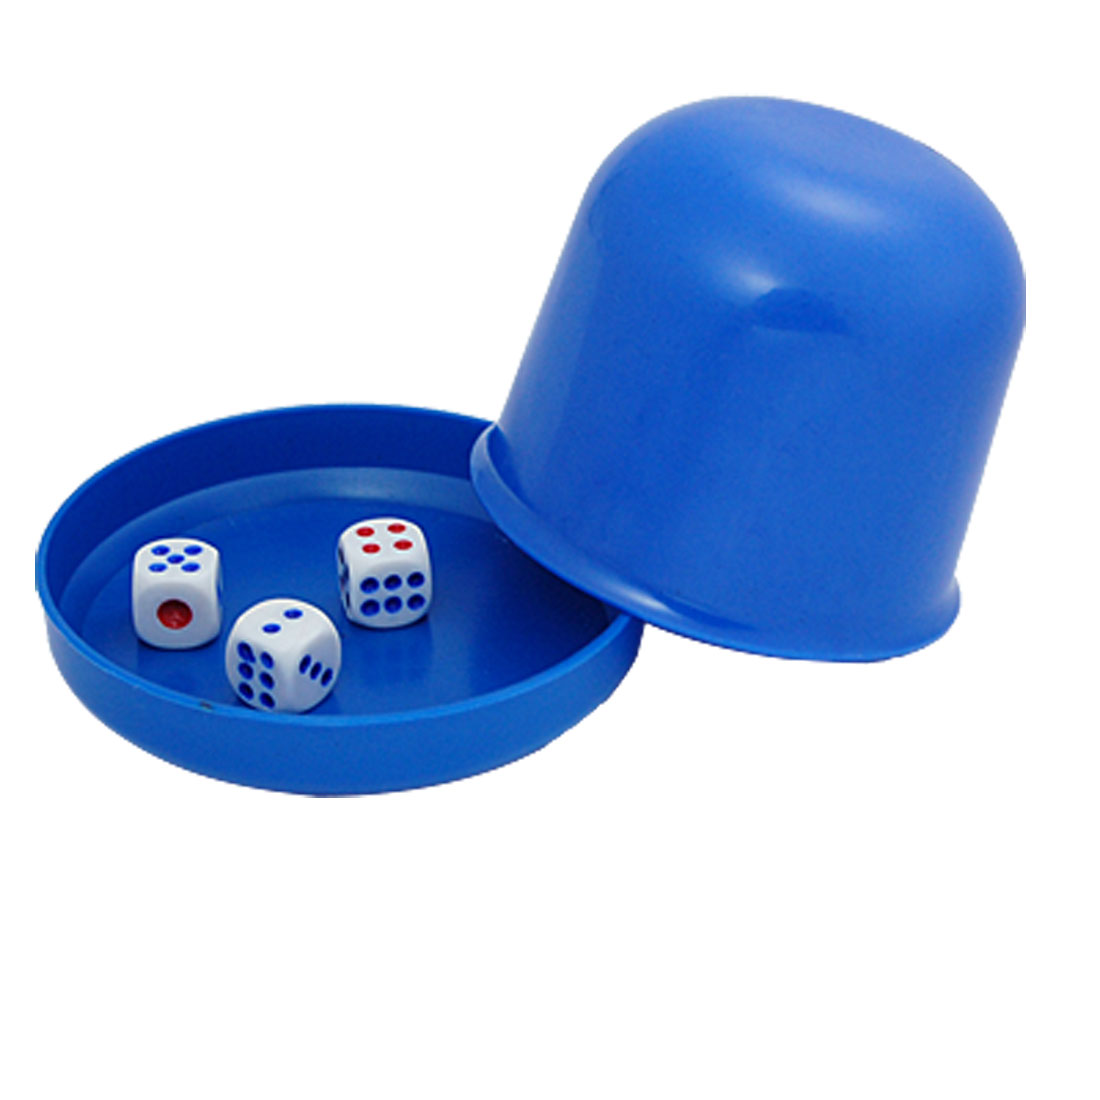 Pub Bar Casino Games Plastic Blue Dice Shaker Cup w 3 Dices